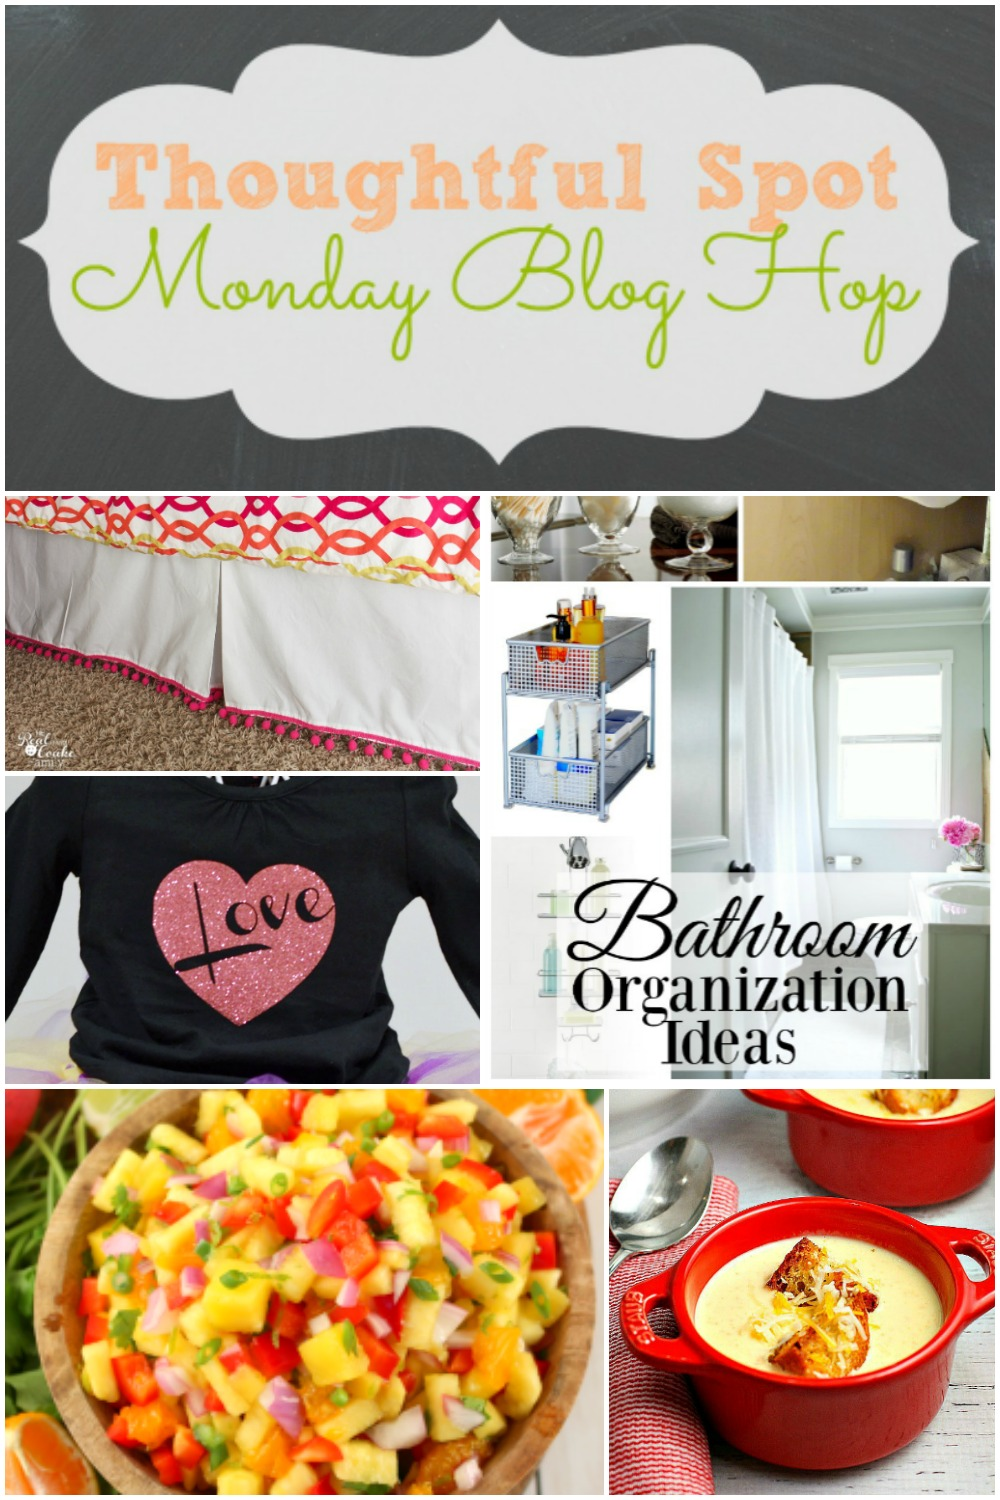 Thoughtful Spot Monday Blog Hop - Join us to find inspiration for your family and home. Sharing recipes, crafts, parenting advice, educational tips, and so much more! - abccreativelearning.com